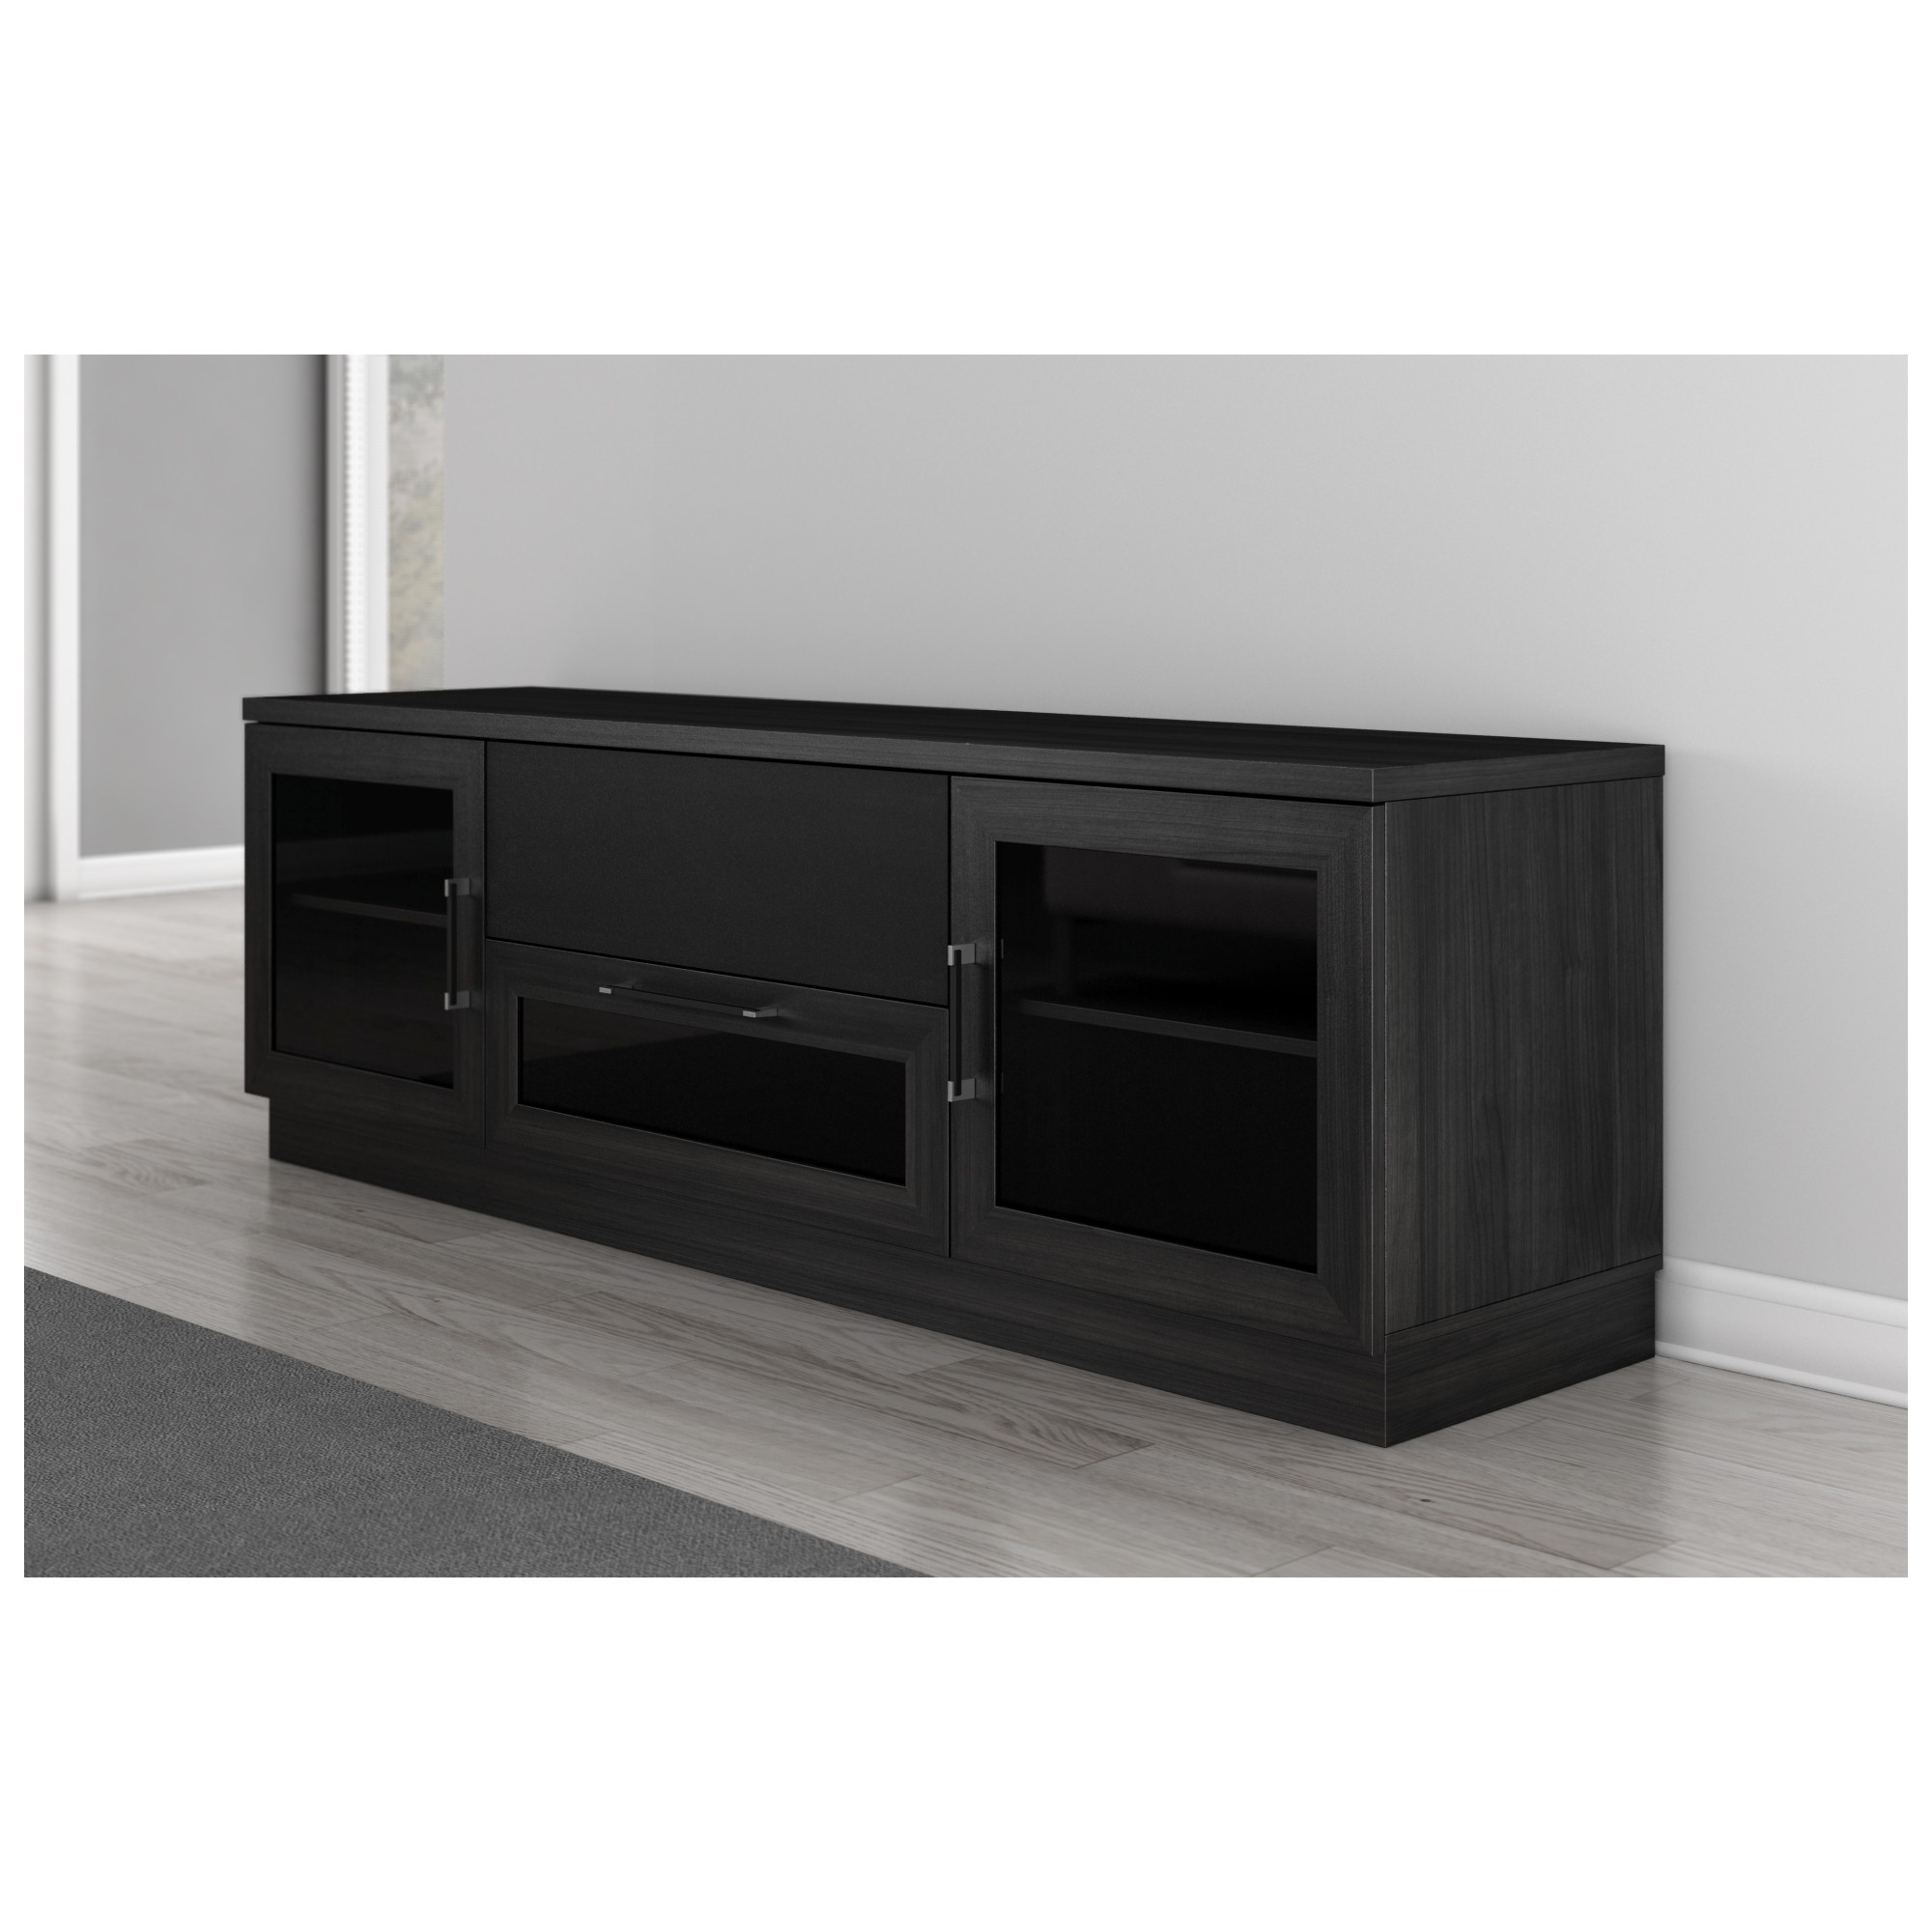 Lovely Wooden Mahogany Cubbies Large And Wide Tv Stand Wooden Regarding Annabelle Black 70 Inch Tv Stands (View 15 of 20)